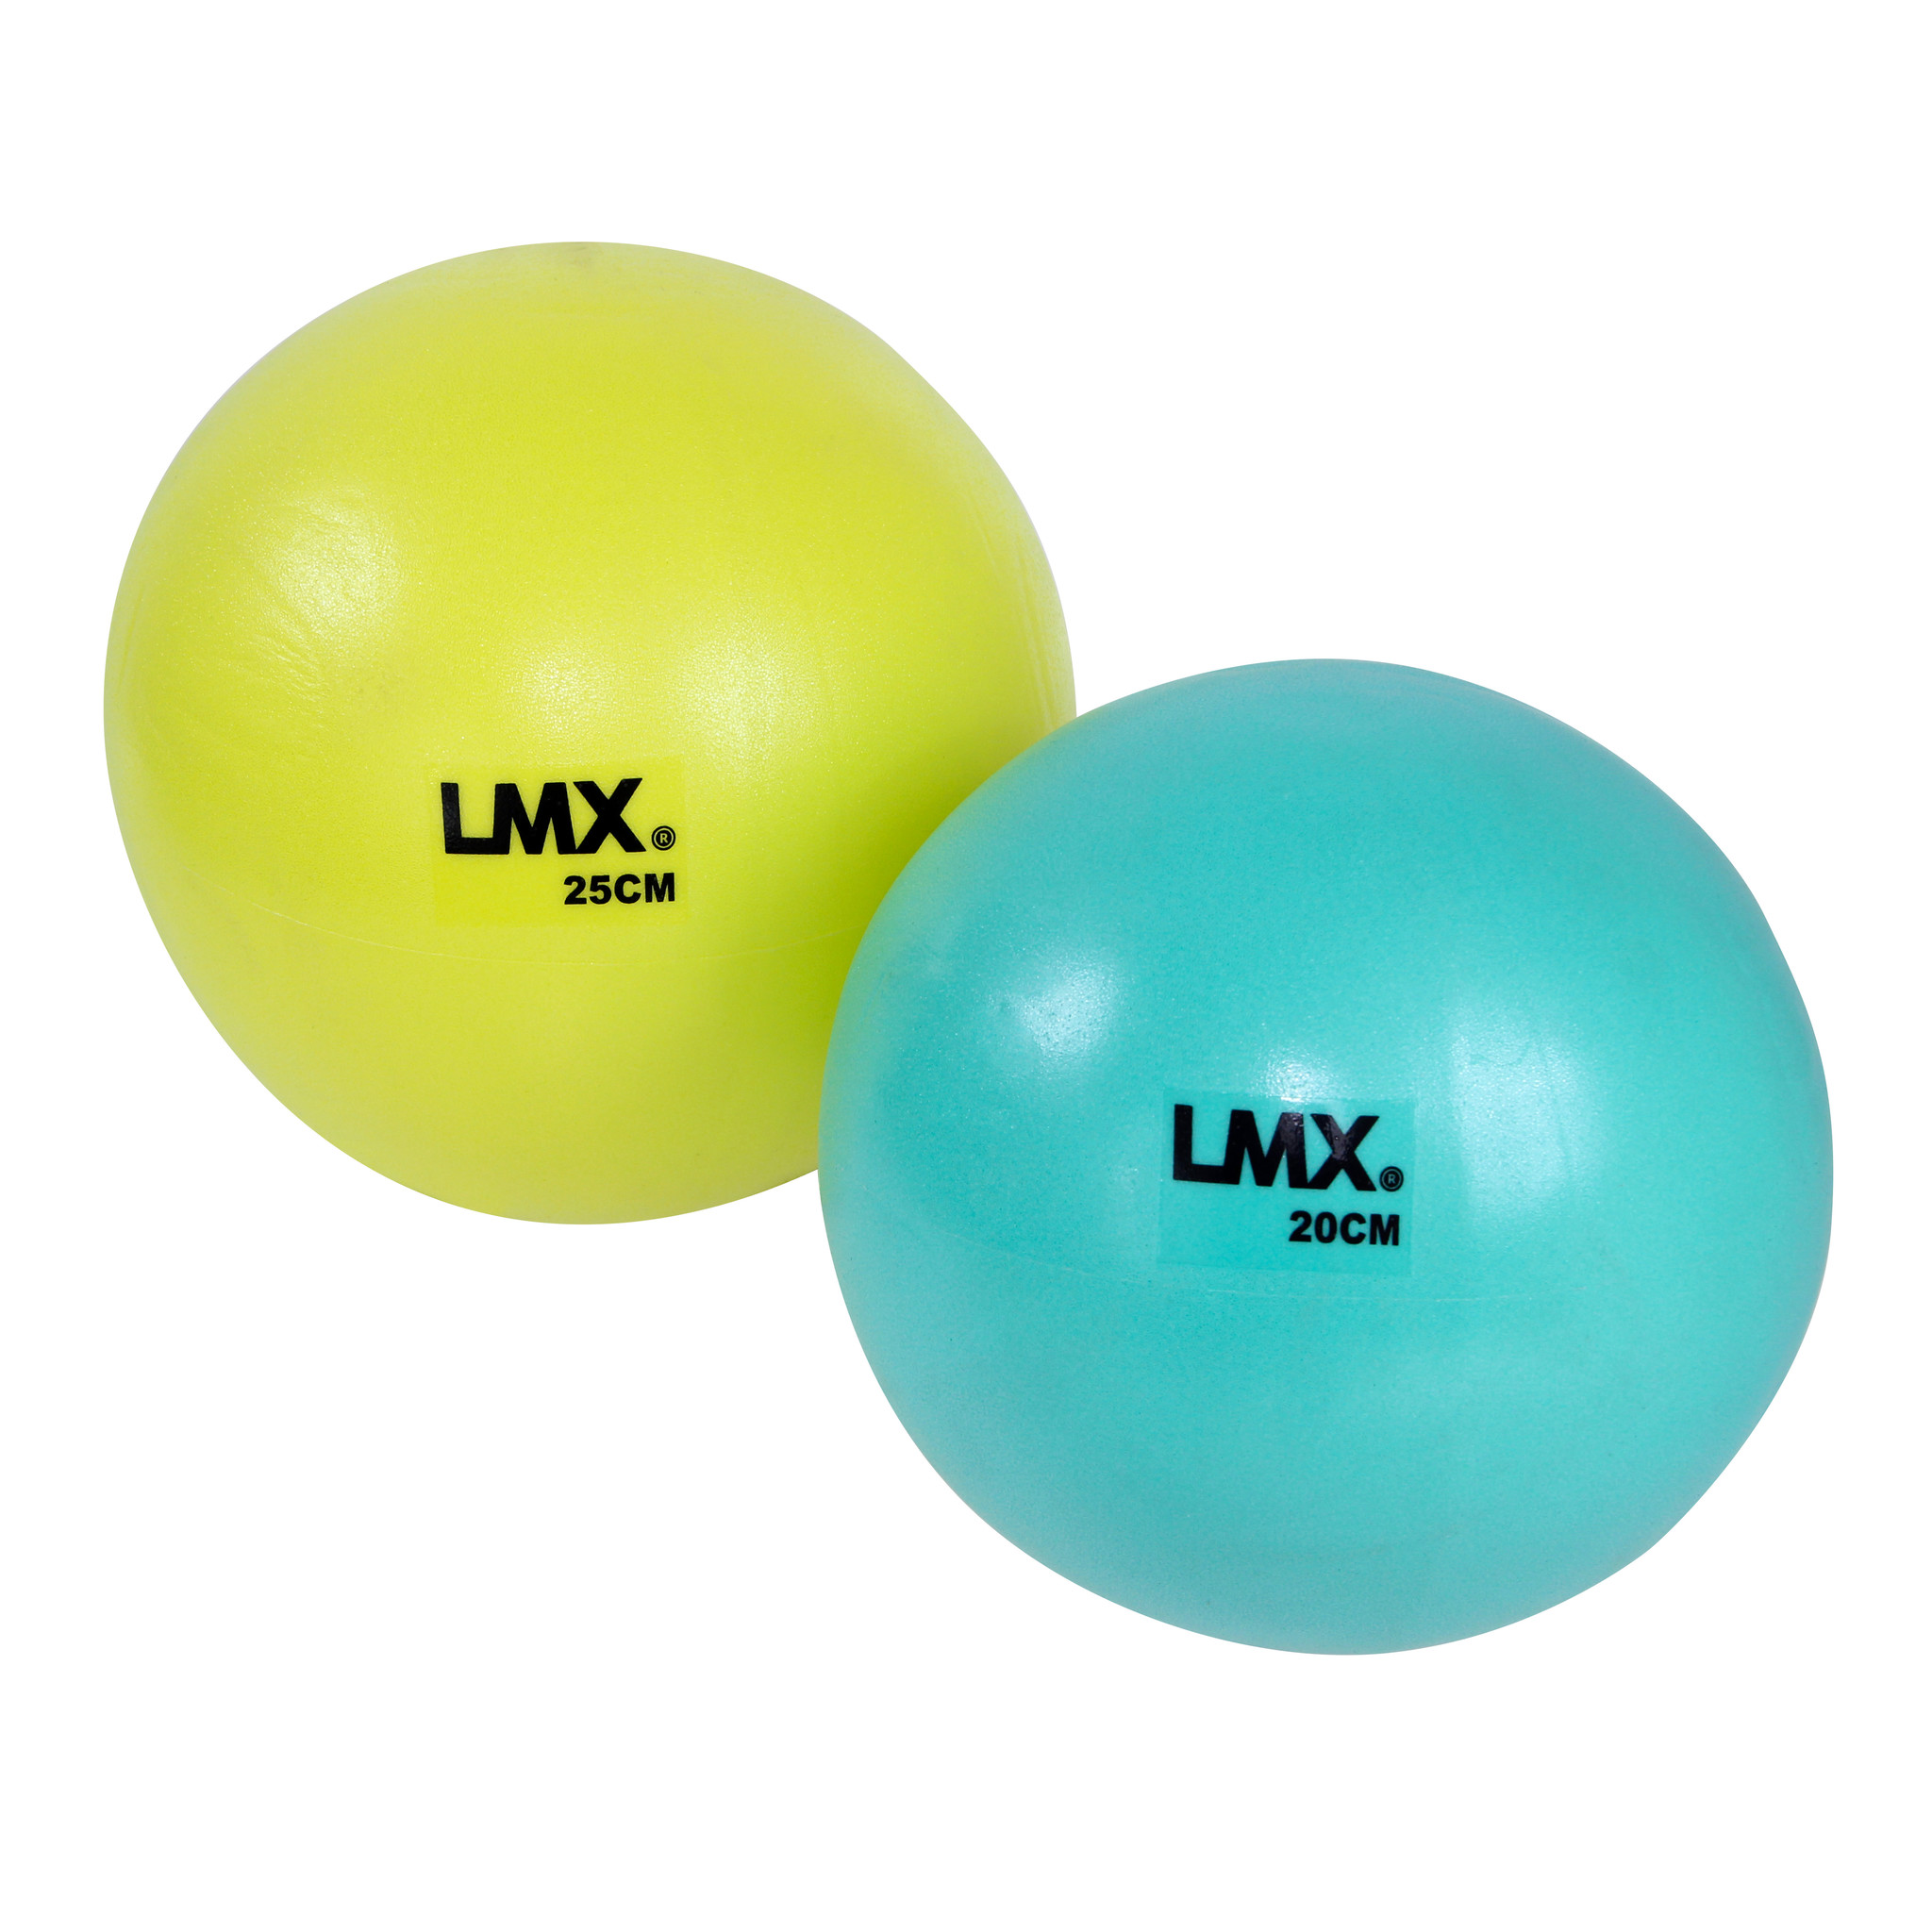 LMX.® LMX1260 LMX. Pilates ball (20 - 25cm)